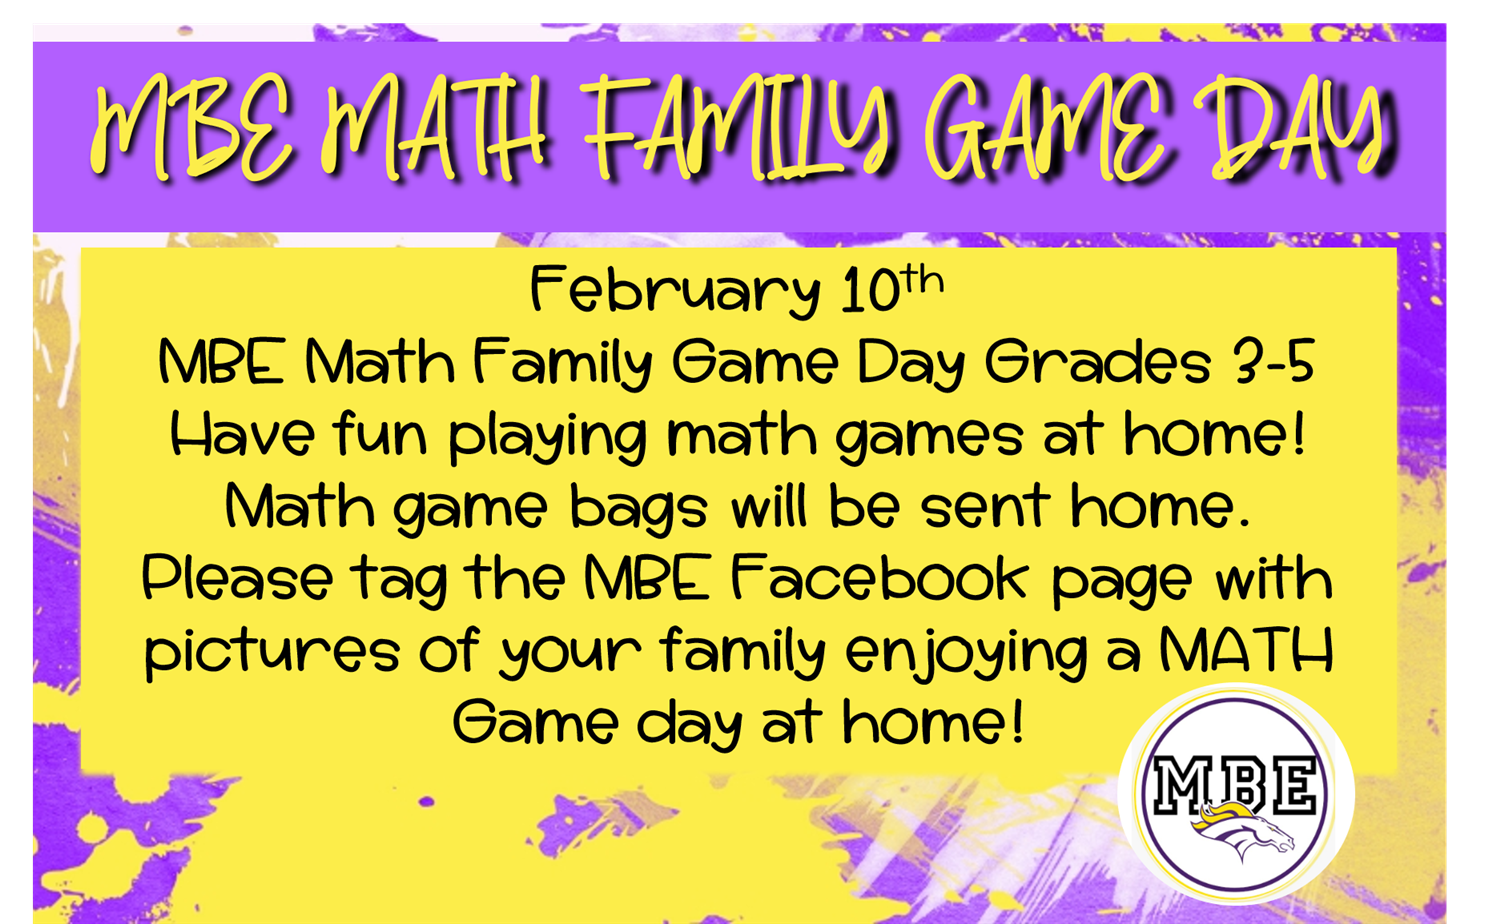 MBE Math Family Game Day